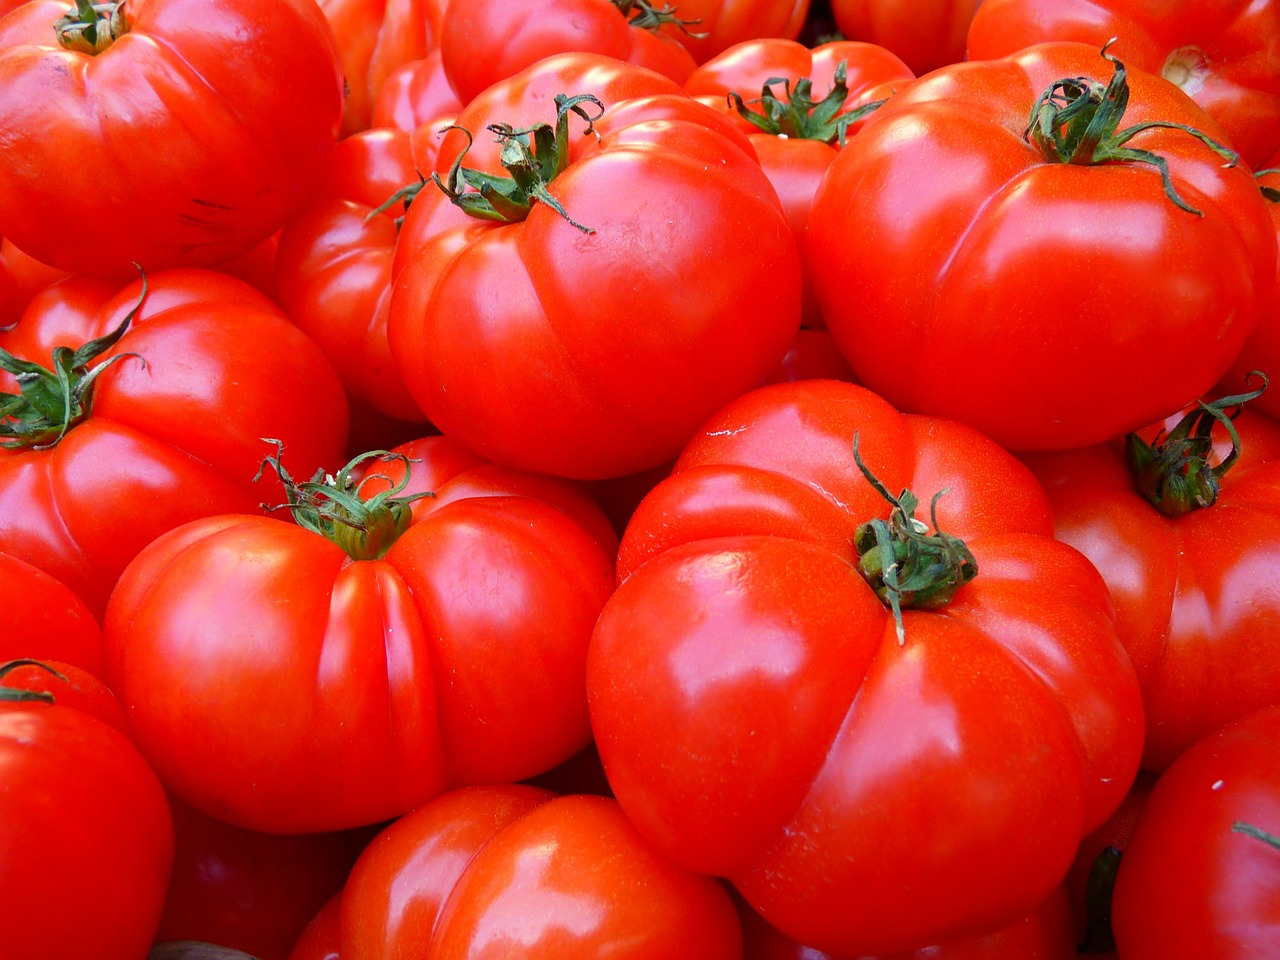 Tips For Canning Tomatoes -- August is in full swing and there are tomatoes everywhere. If you planted a few tomato plants, you might be wondering what you can do with tour bumper crop of tomatoes